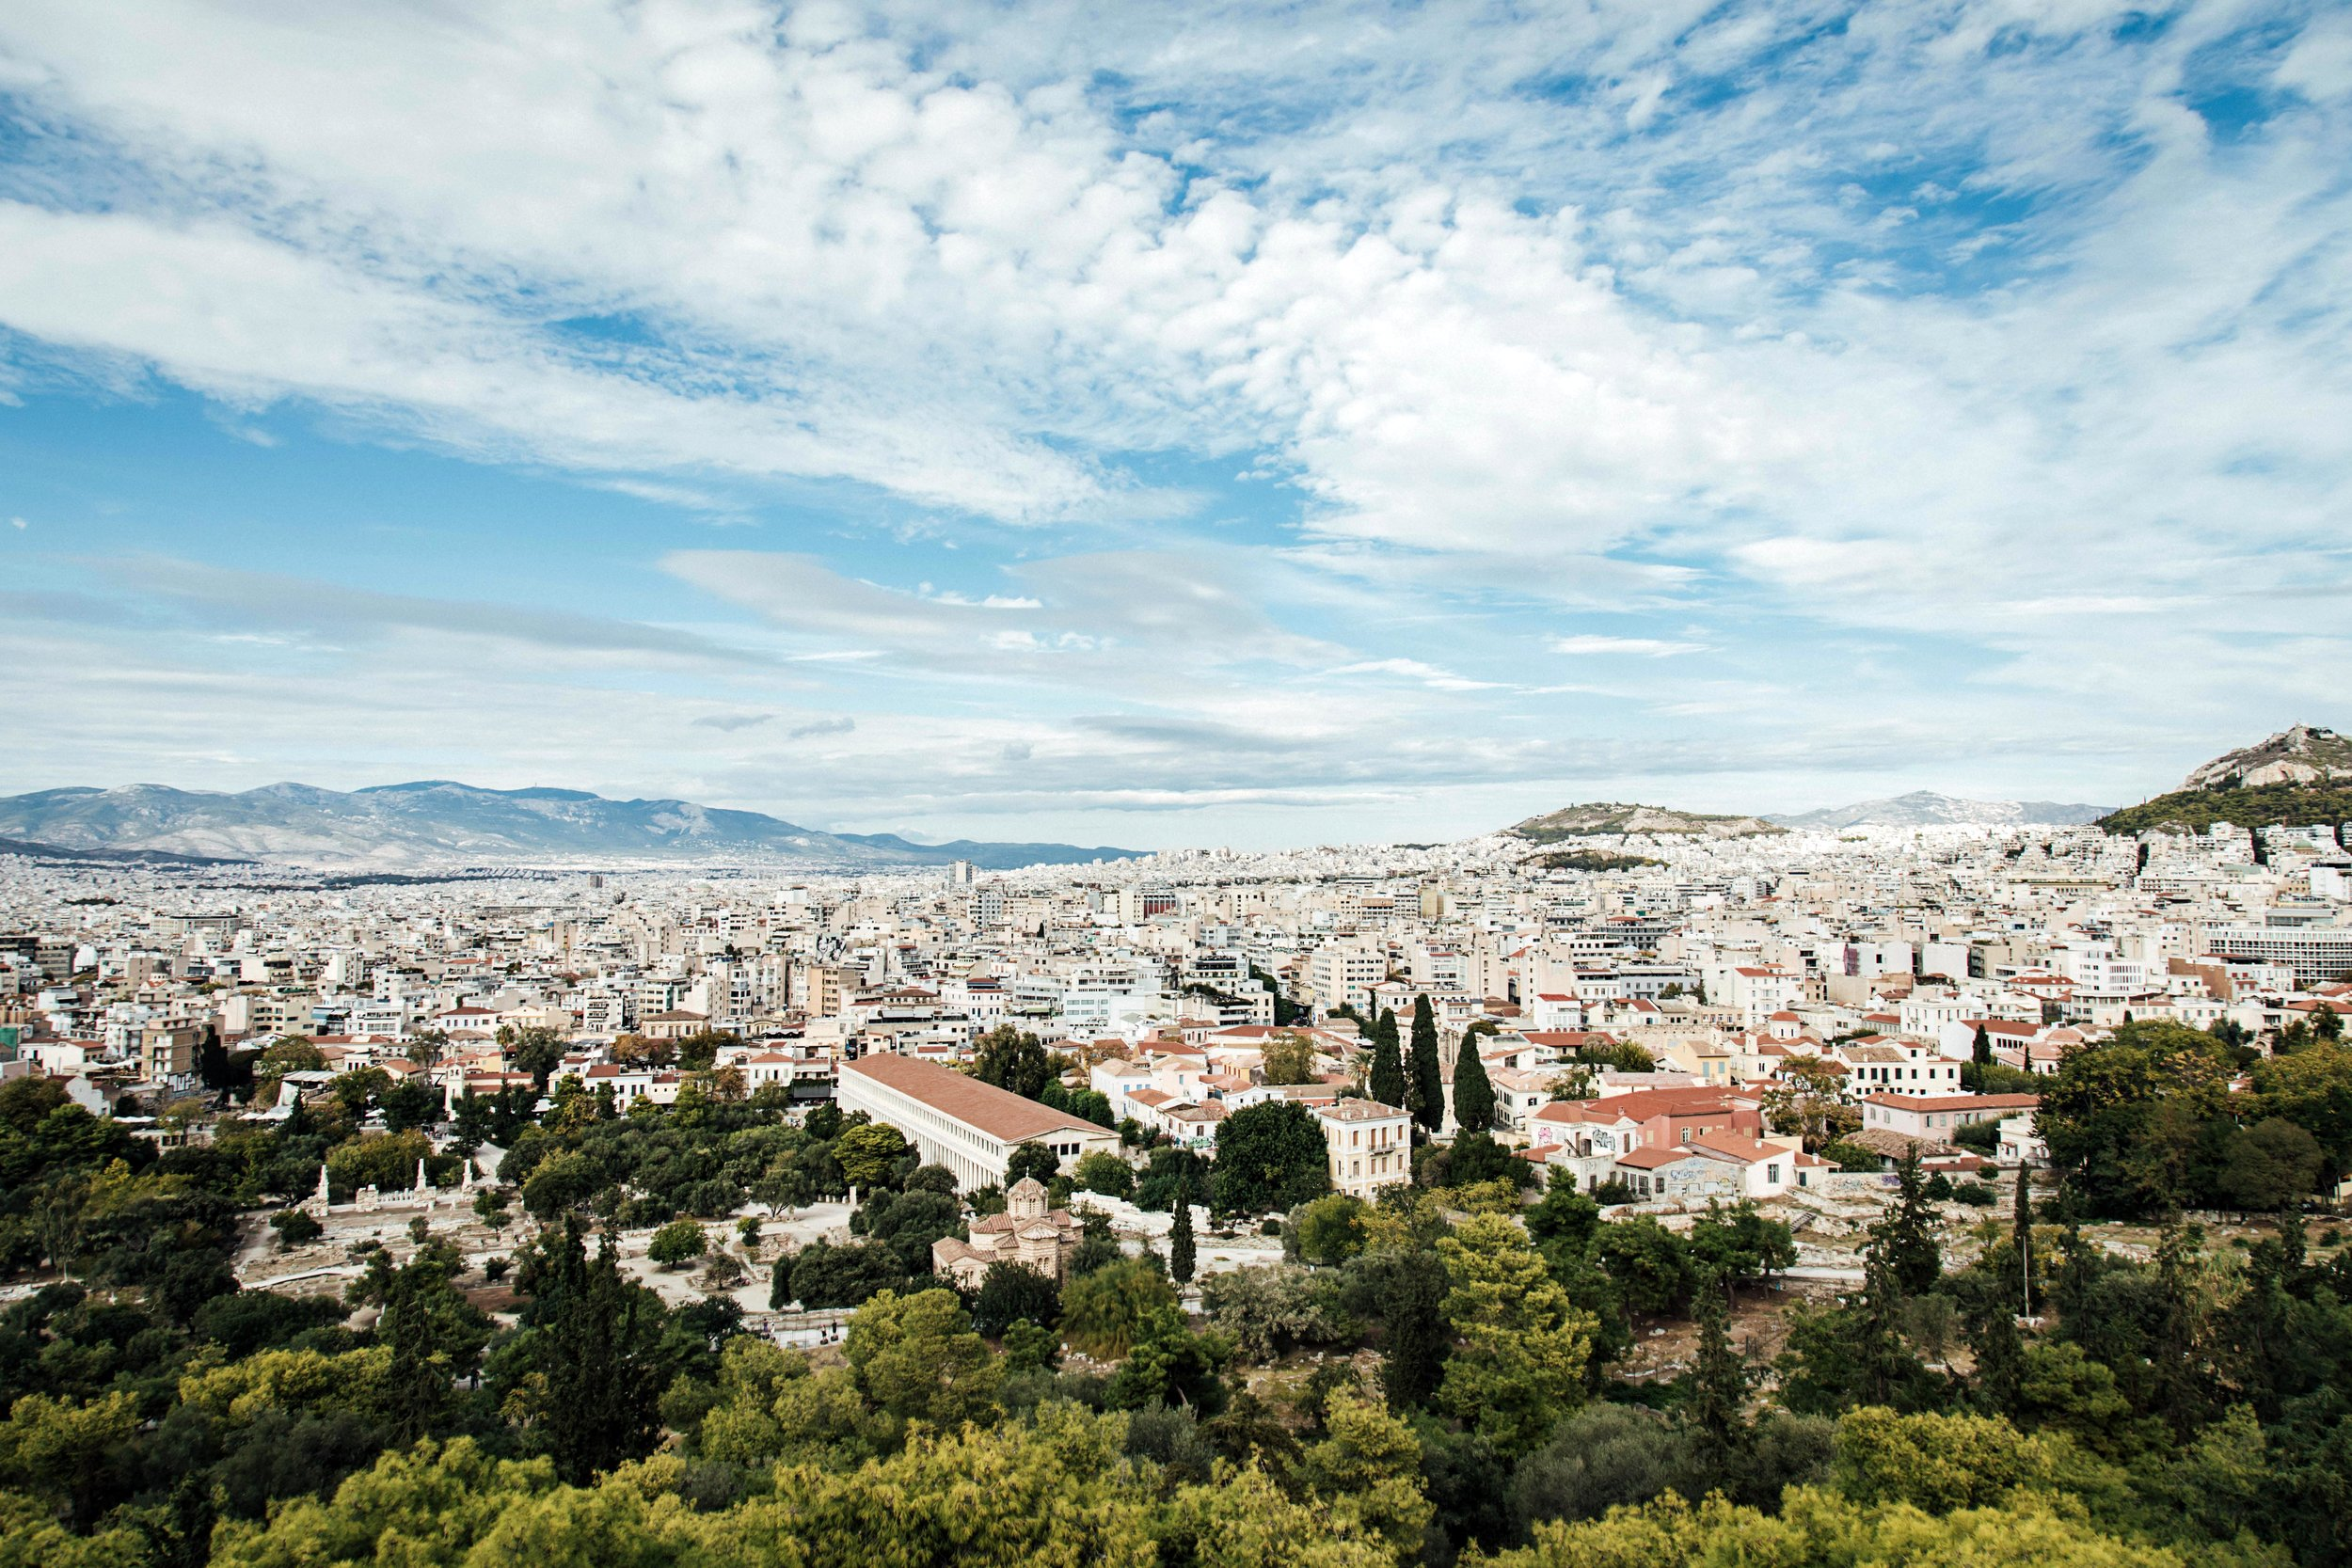 Travel_Photography_01_Athens-Greece (11)-min.jpg